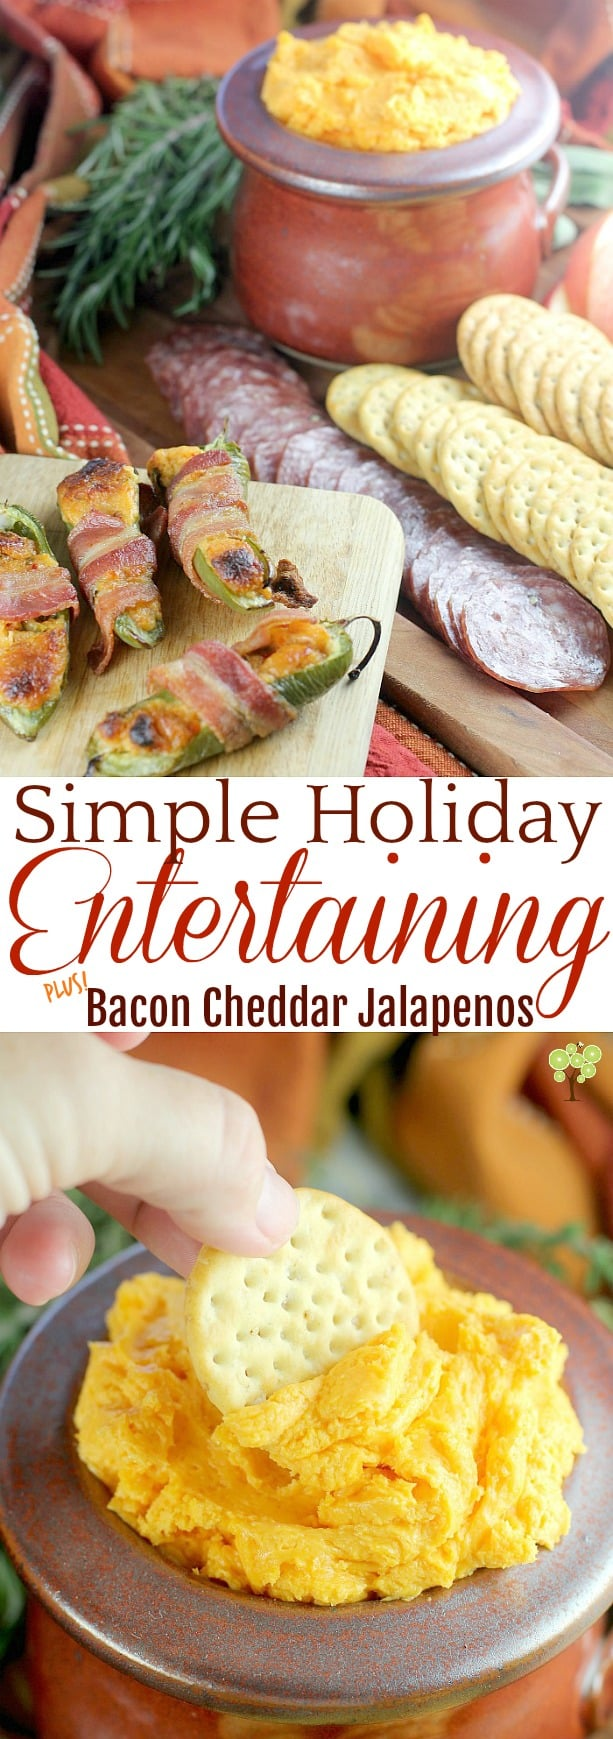 Simple Holiday Entertaining plus Bacon Cheddar Jalapenos #InspireWithCheese #ad